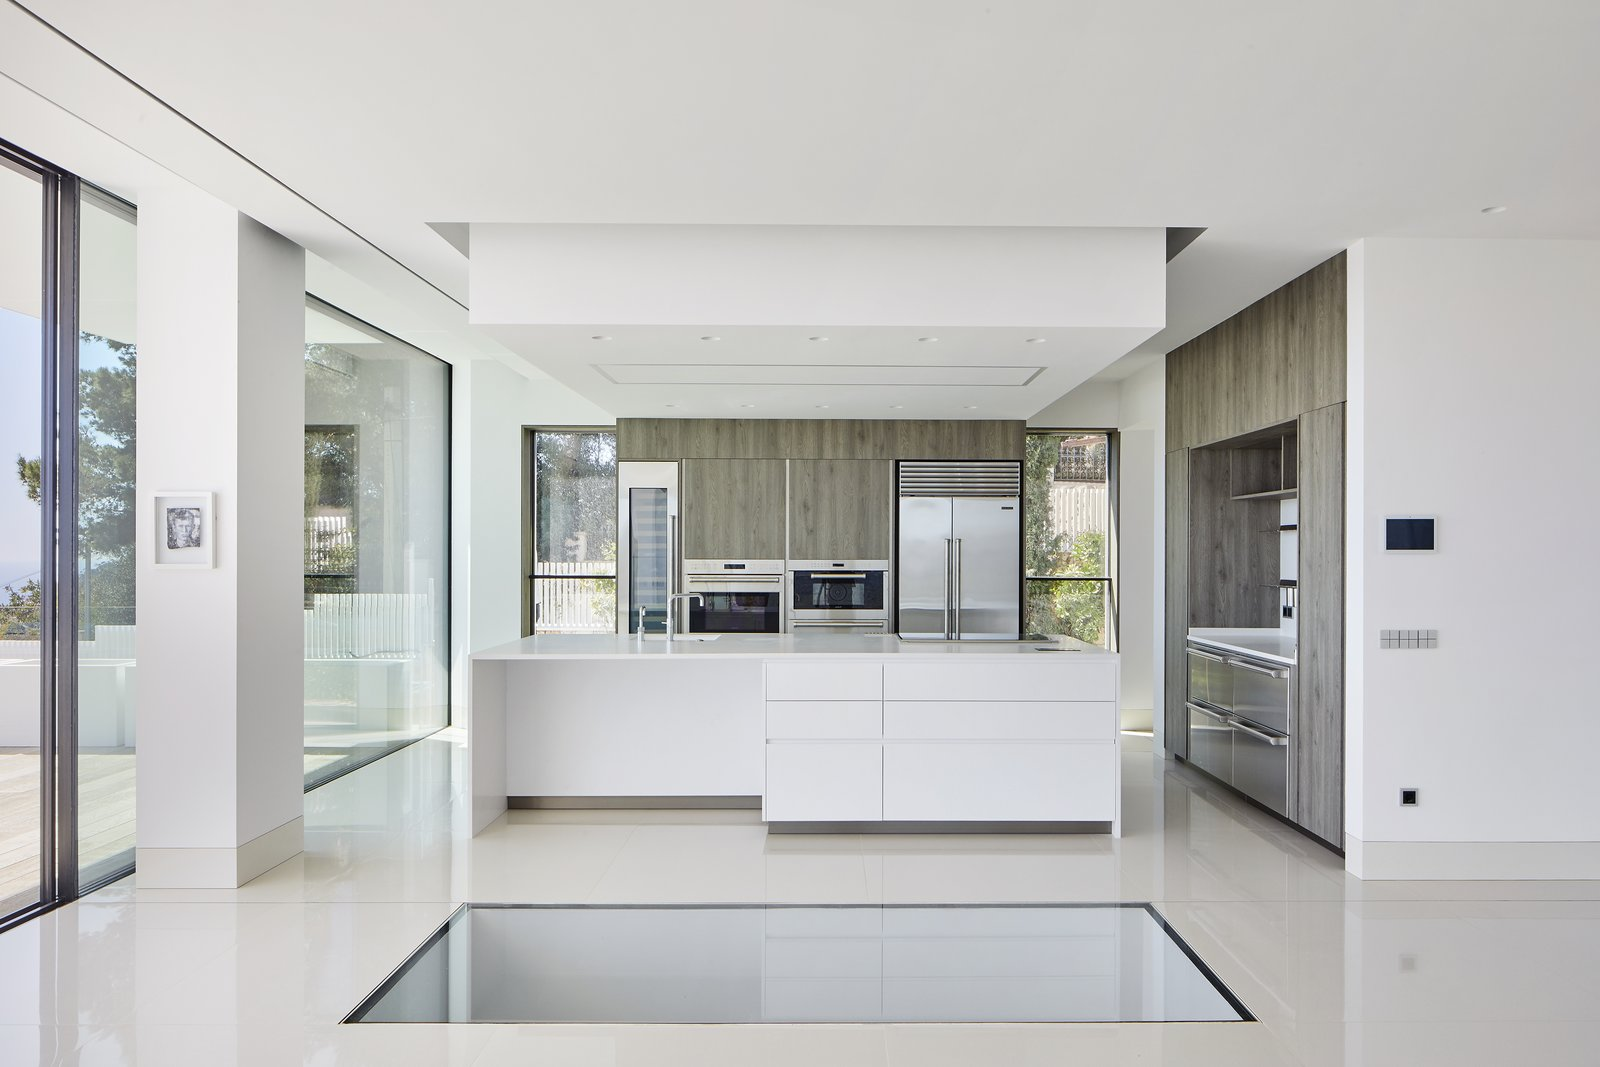 Kitchen, Wall Oven, White, Metal, Microwave, Wine Cooler, Drop In, Laminate, Ceiling, Granite, Range, Range Hood, Dishwasher, Ice Maker, Table, Beverage Center, Cooktops, Wood, Refrigerator, and Porcelain Tile Kitchen.  Best Kitchen Beverage Center Range White Dishwasher Metal Table Drop In Ice Maker Photos from 廚房